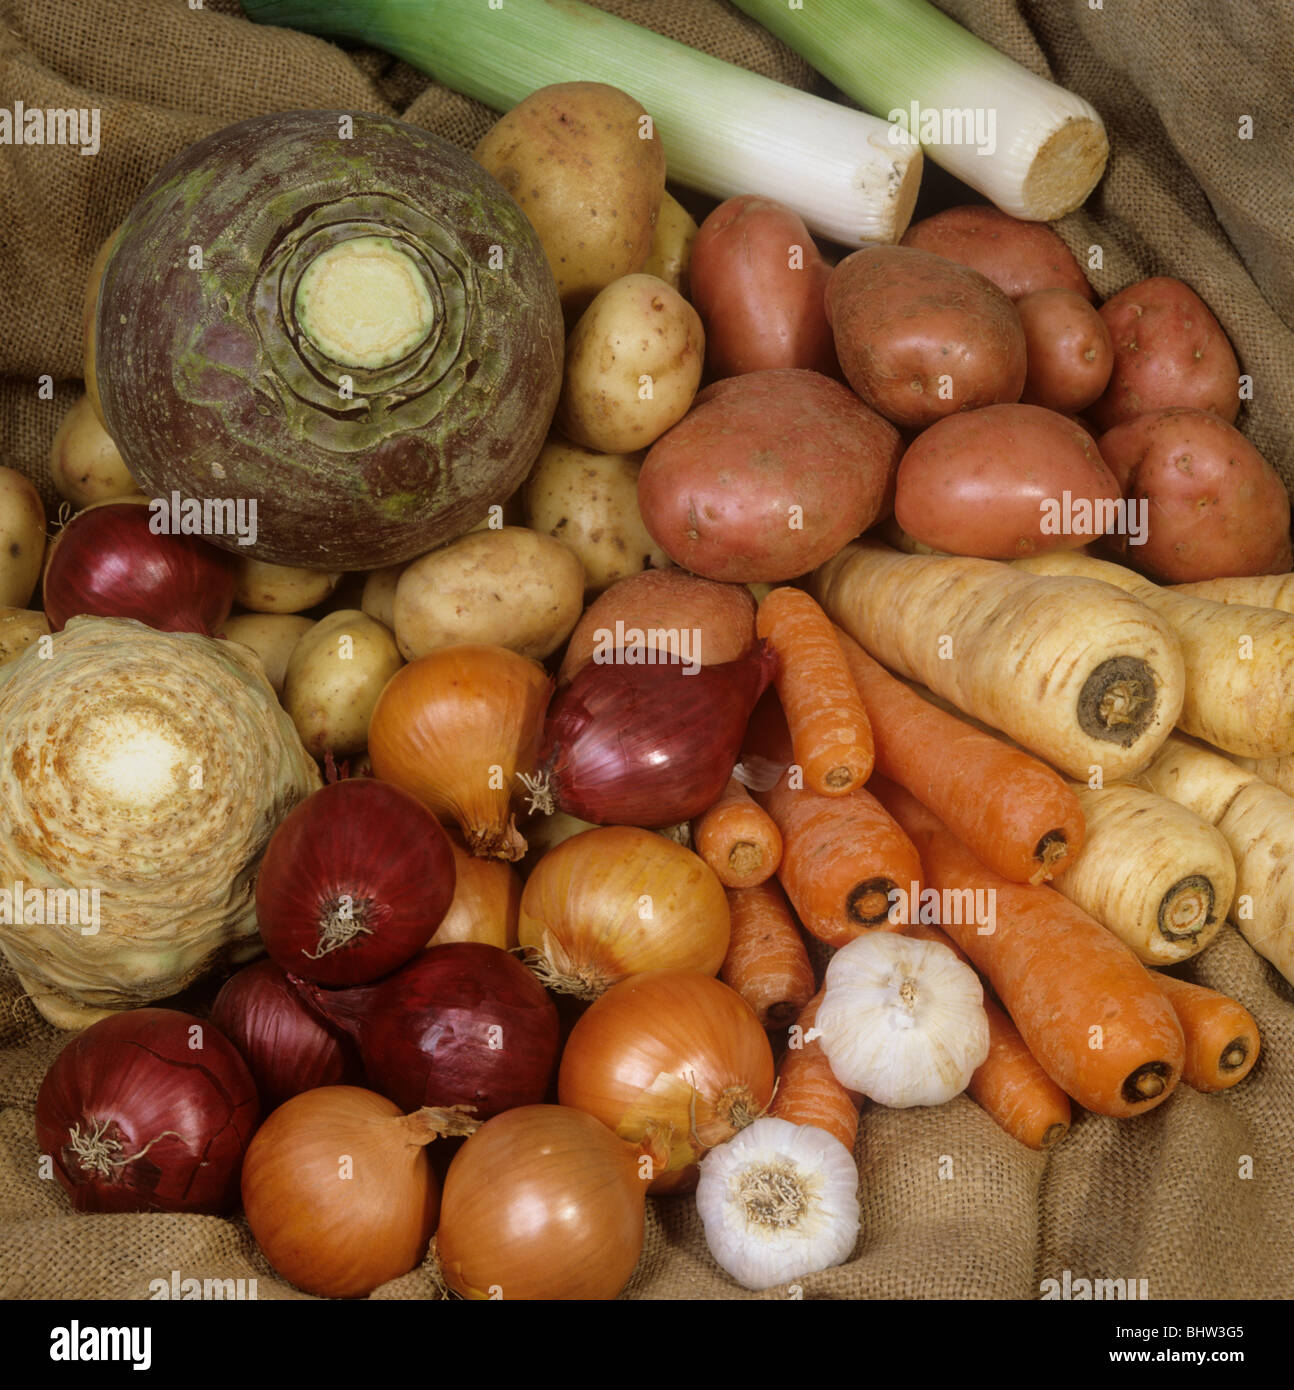 A selection of root vegetables bought in the supermarket Stock Photo